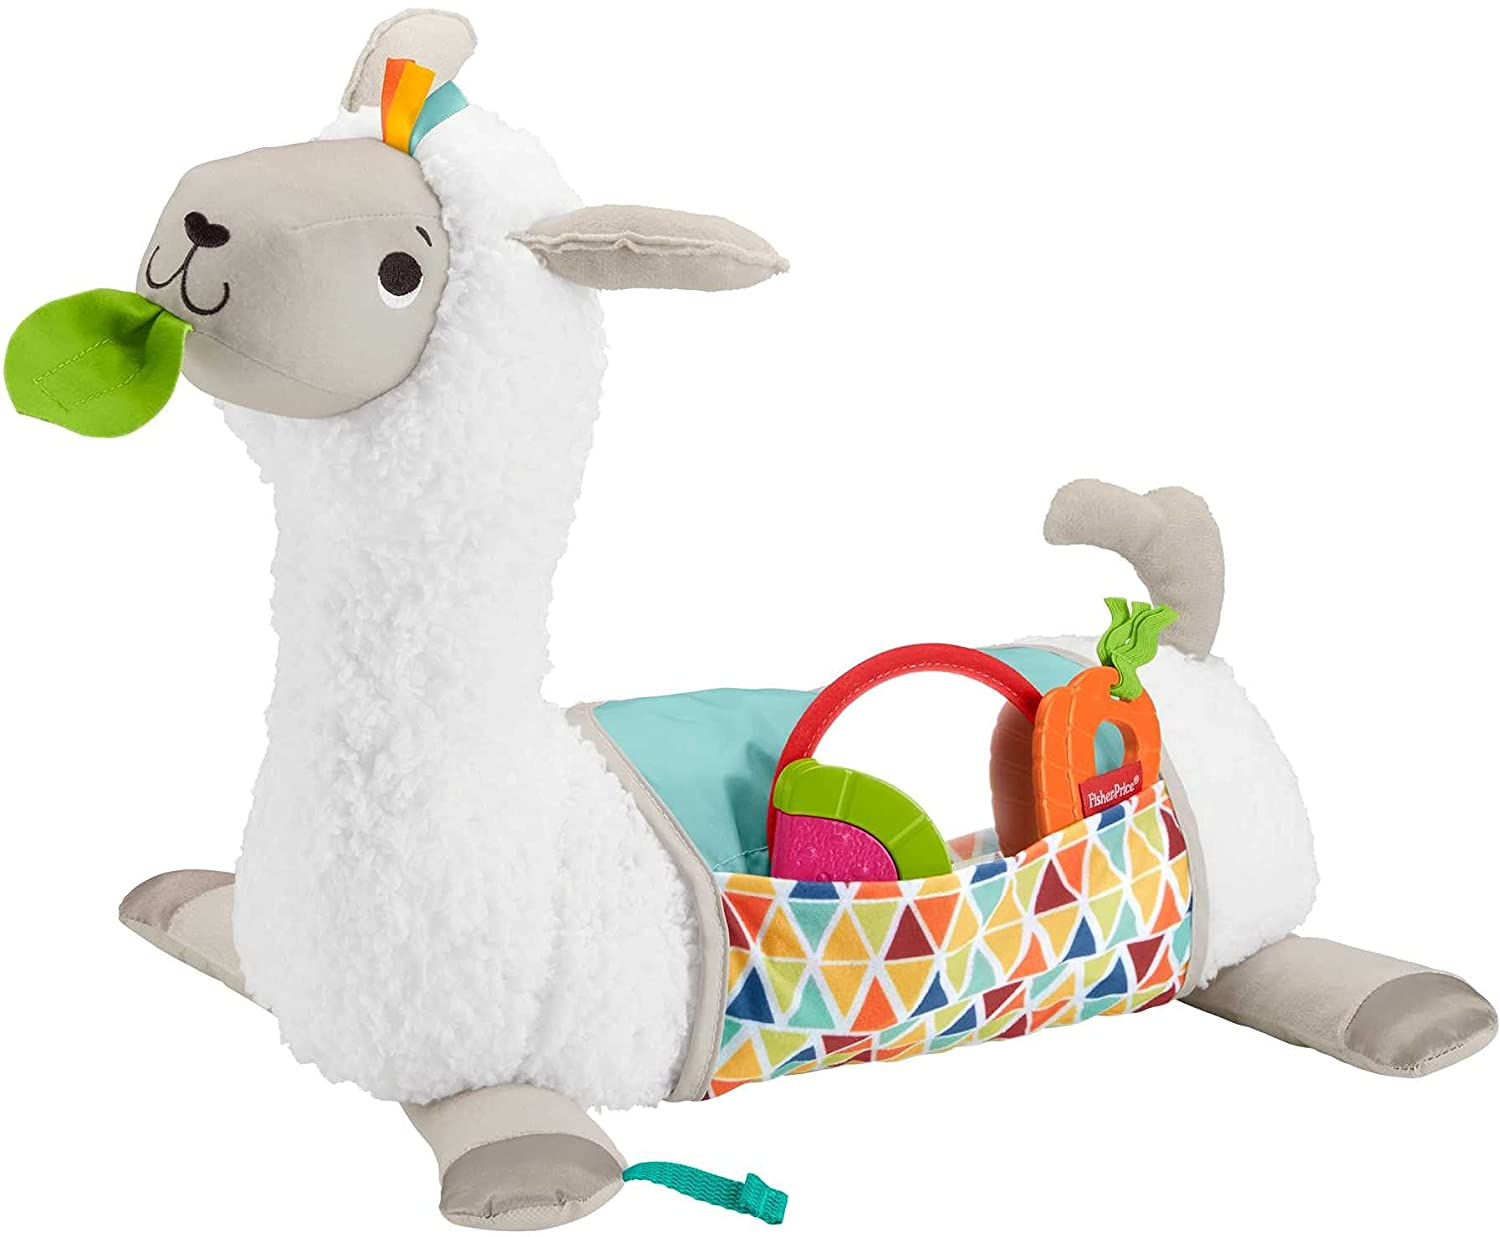 Fisher Price Tummy Time Llama - Full view with the Blanket and 3 take-along toys